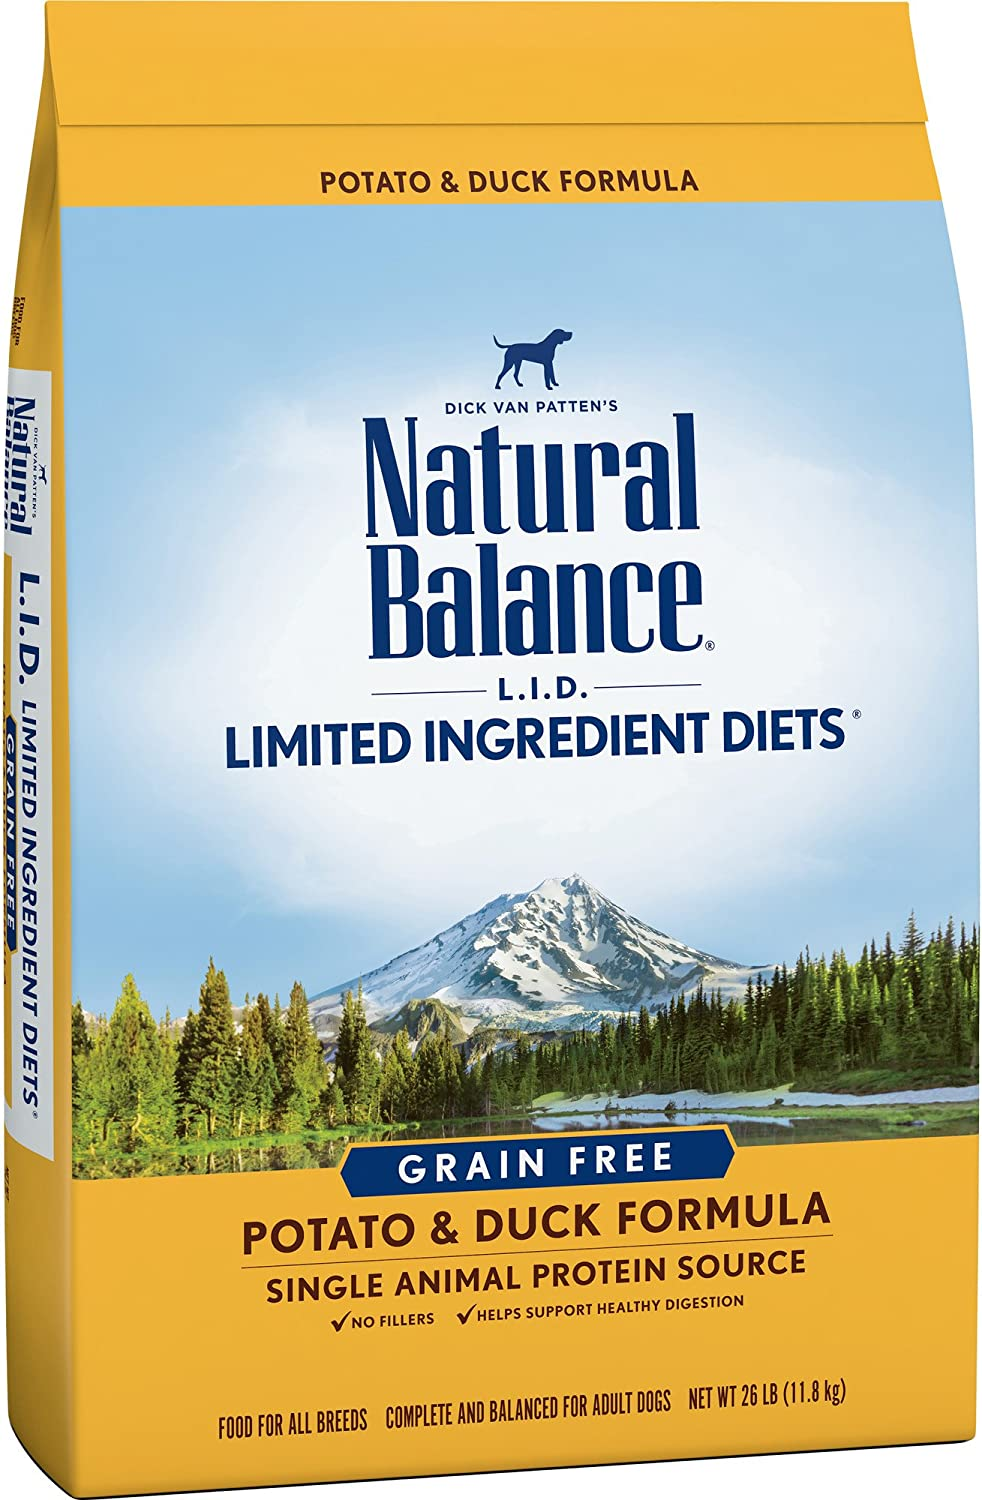 Natural Balance L.I.D. Limited Ingredient Diets Dry Dog Food, Grain Free, Potato & Duck Formula, 26Pound